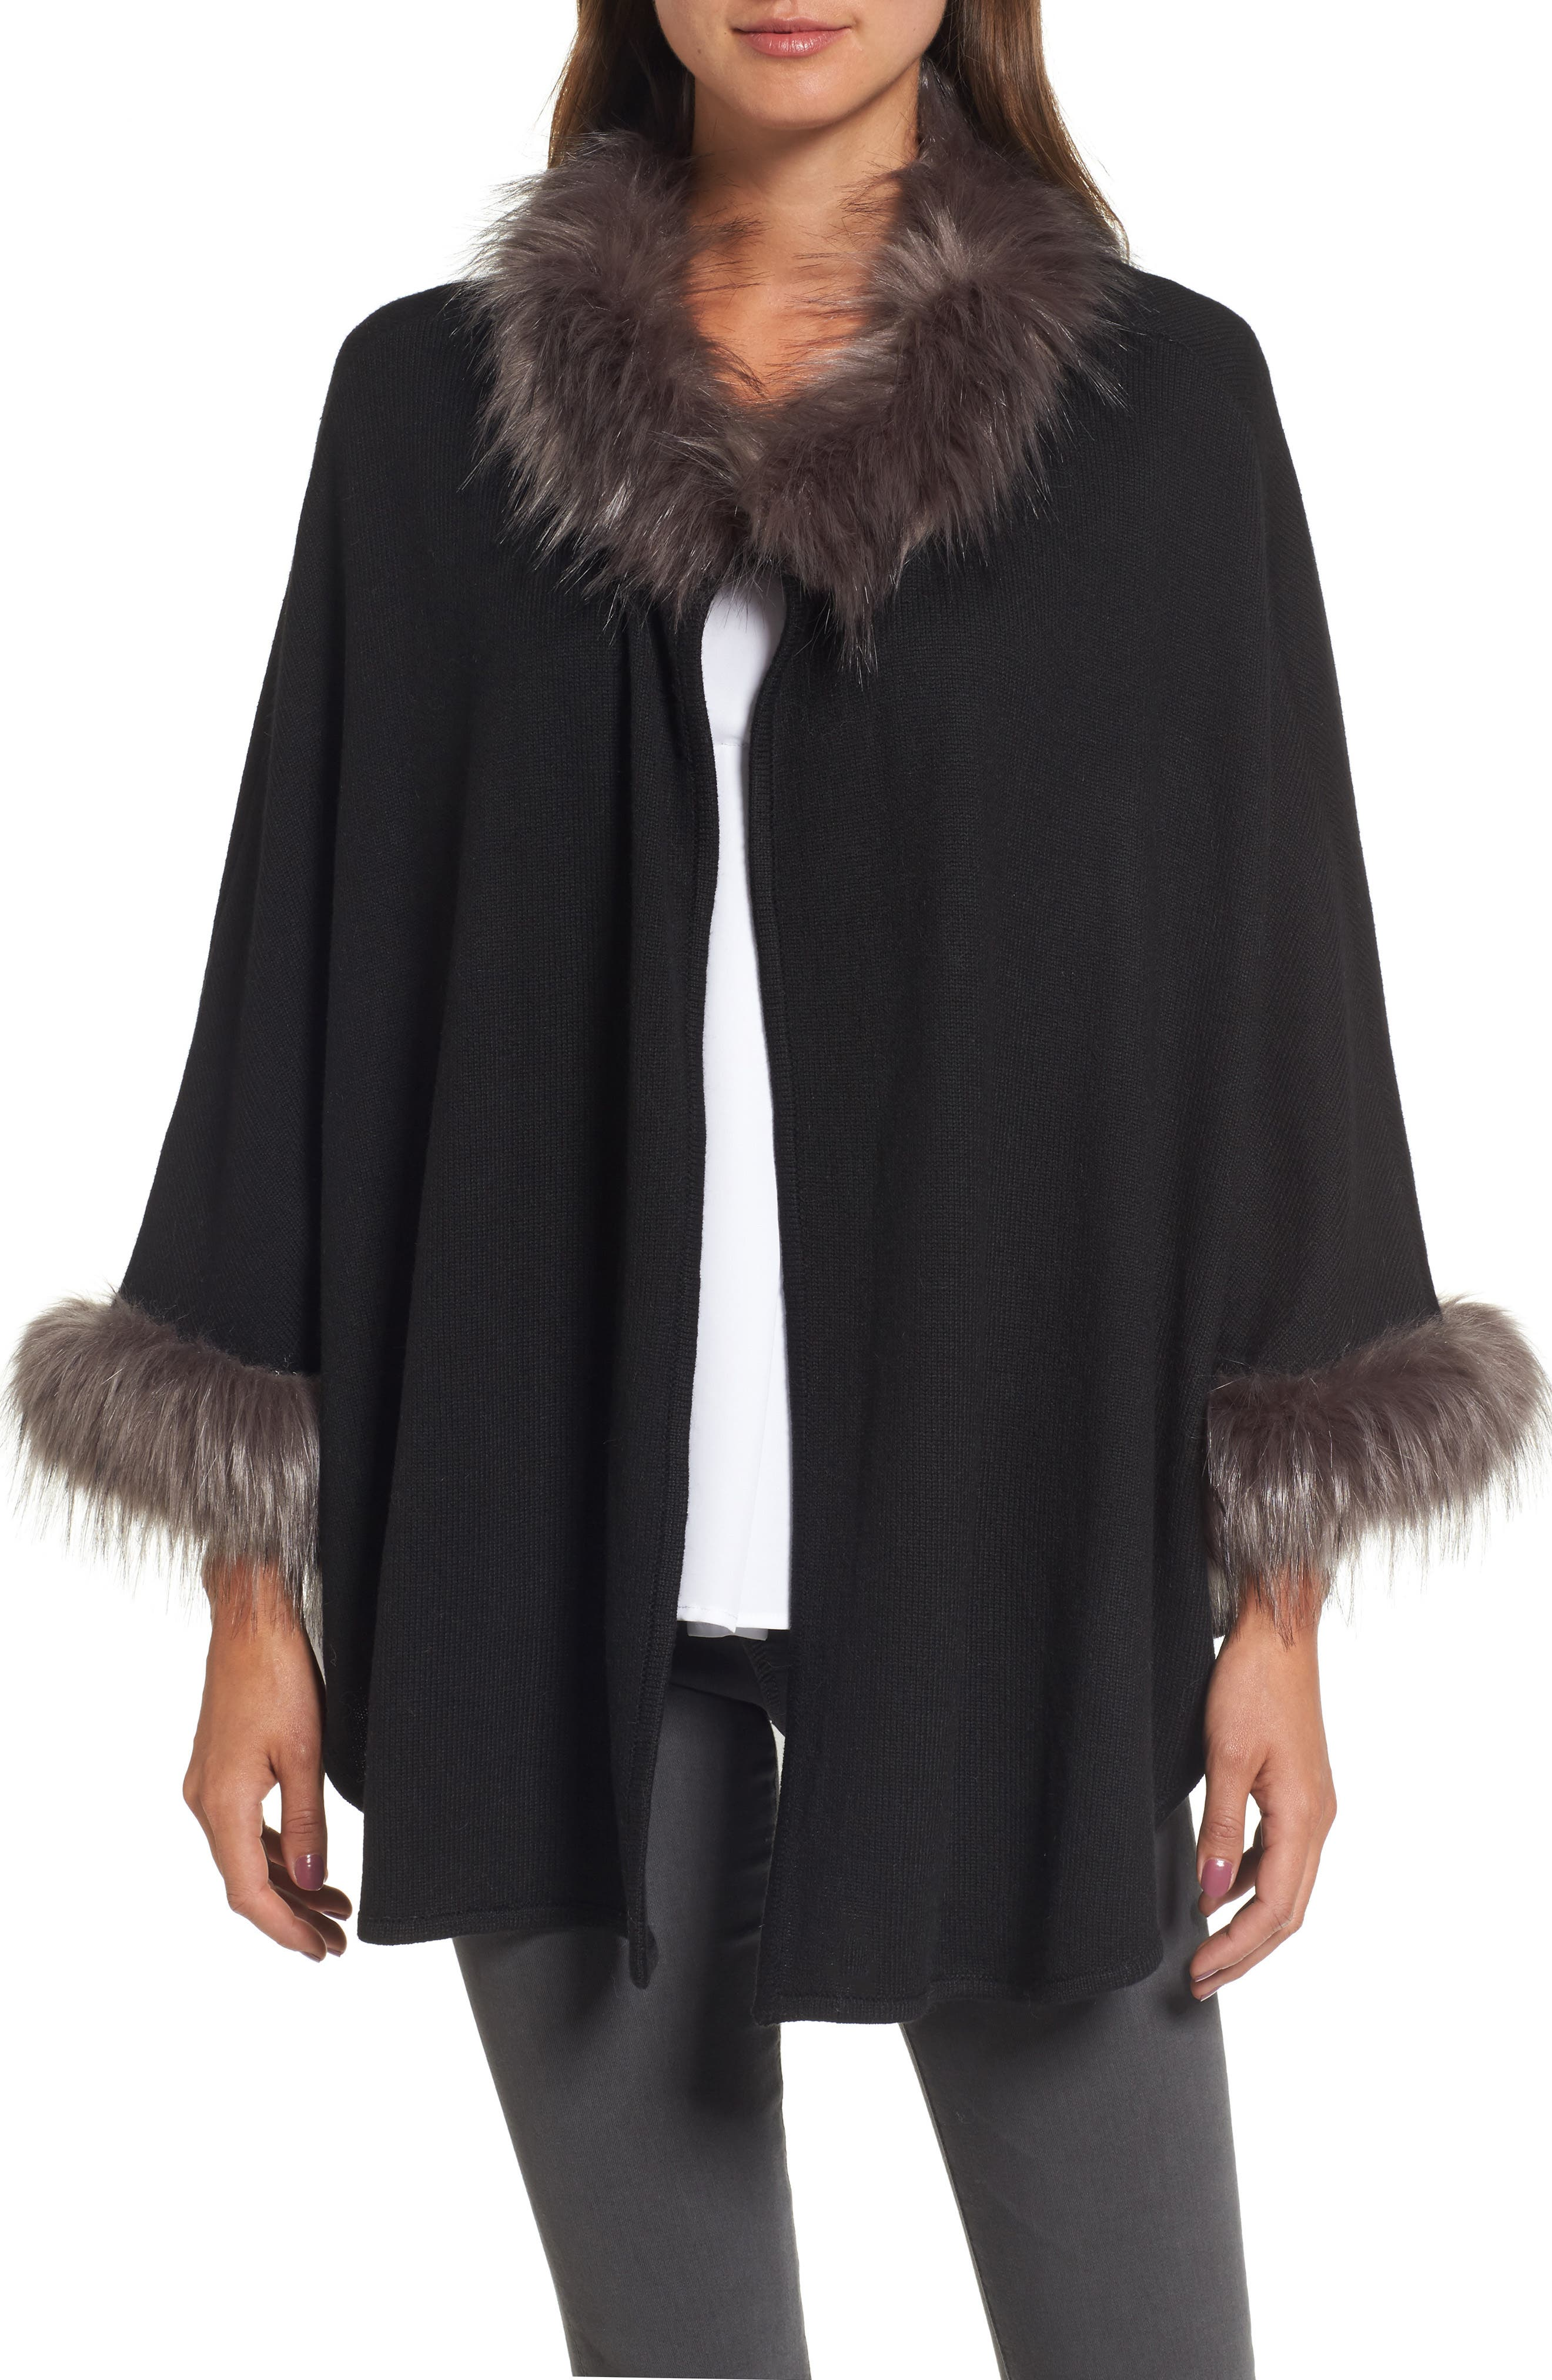 Main Image - Love Token Knit Poncho with Faux Fur Trim